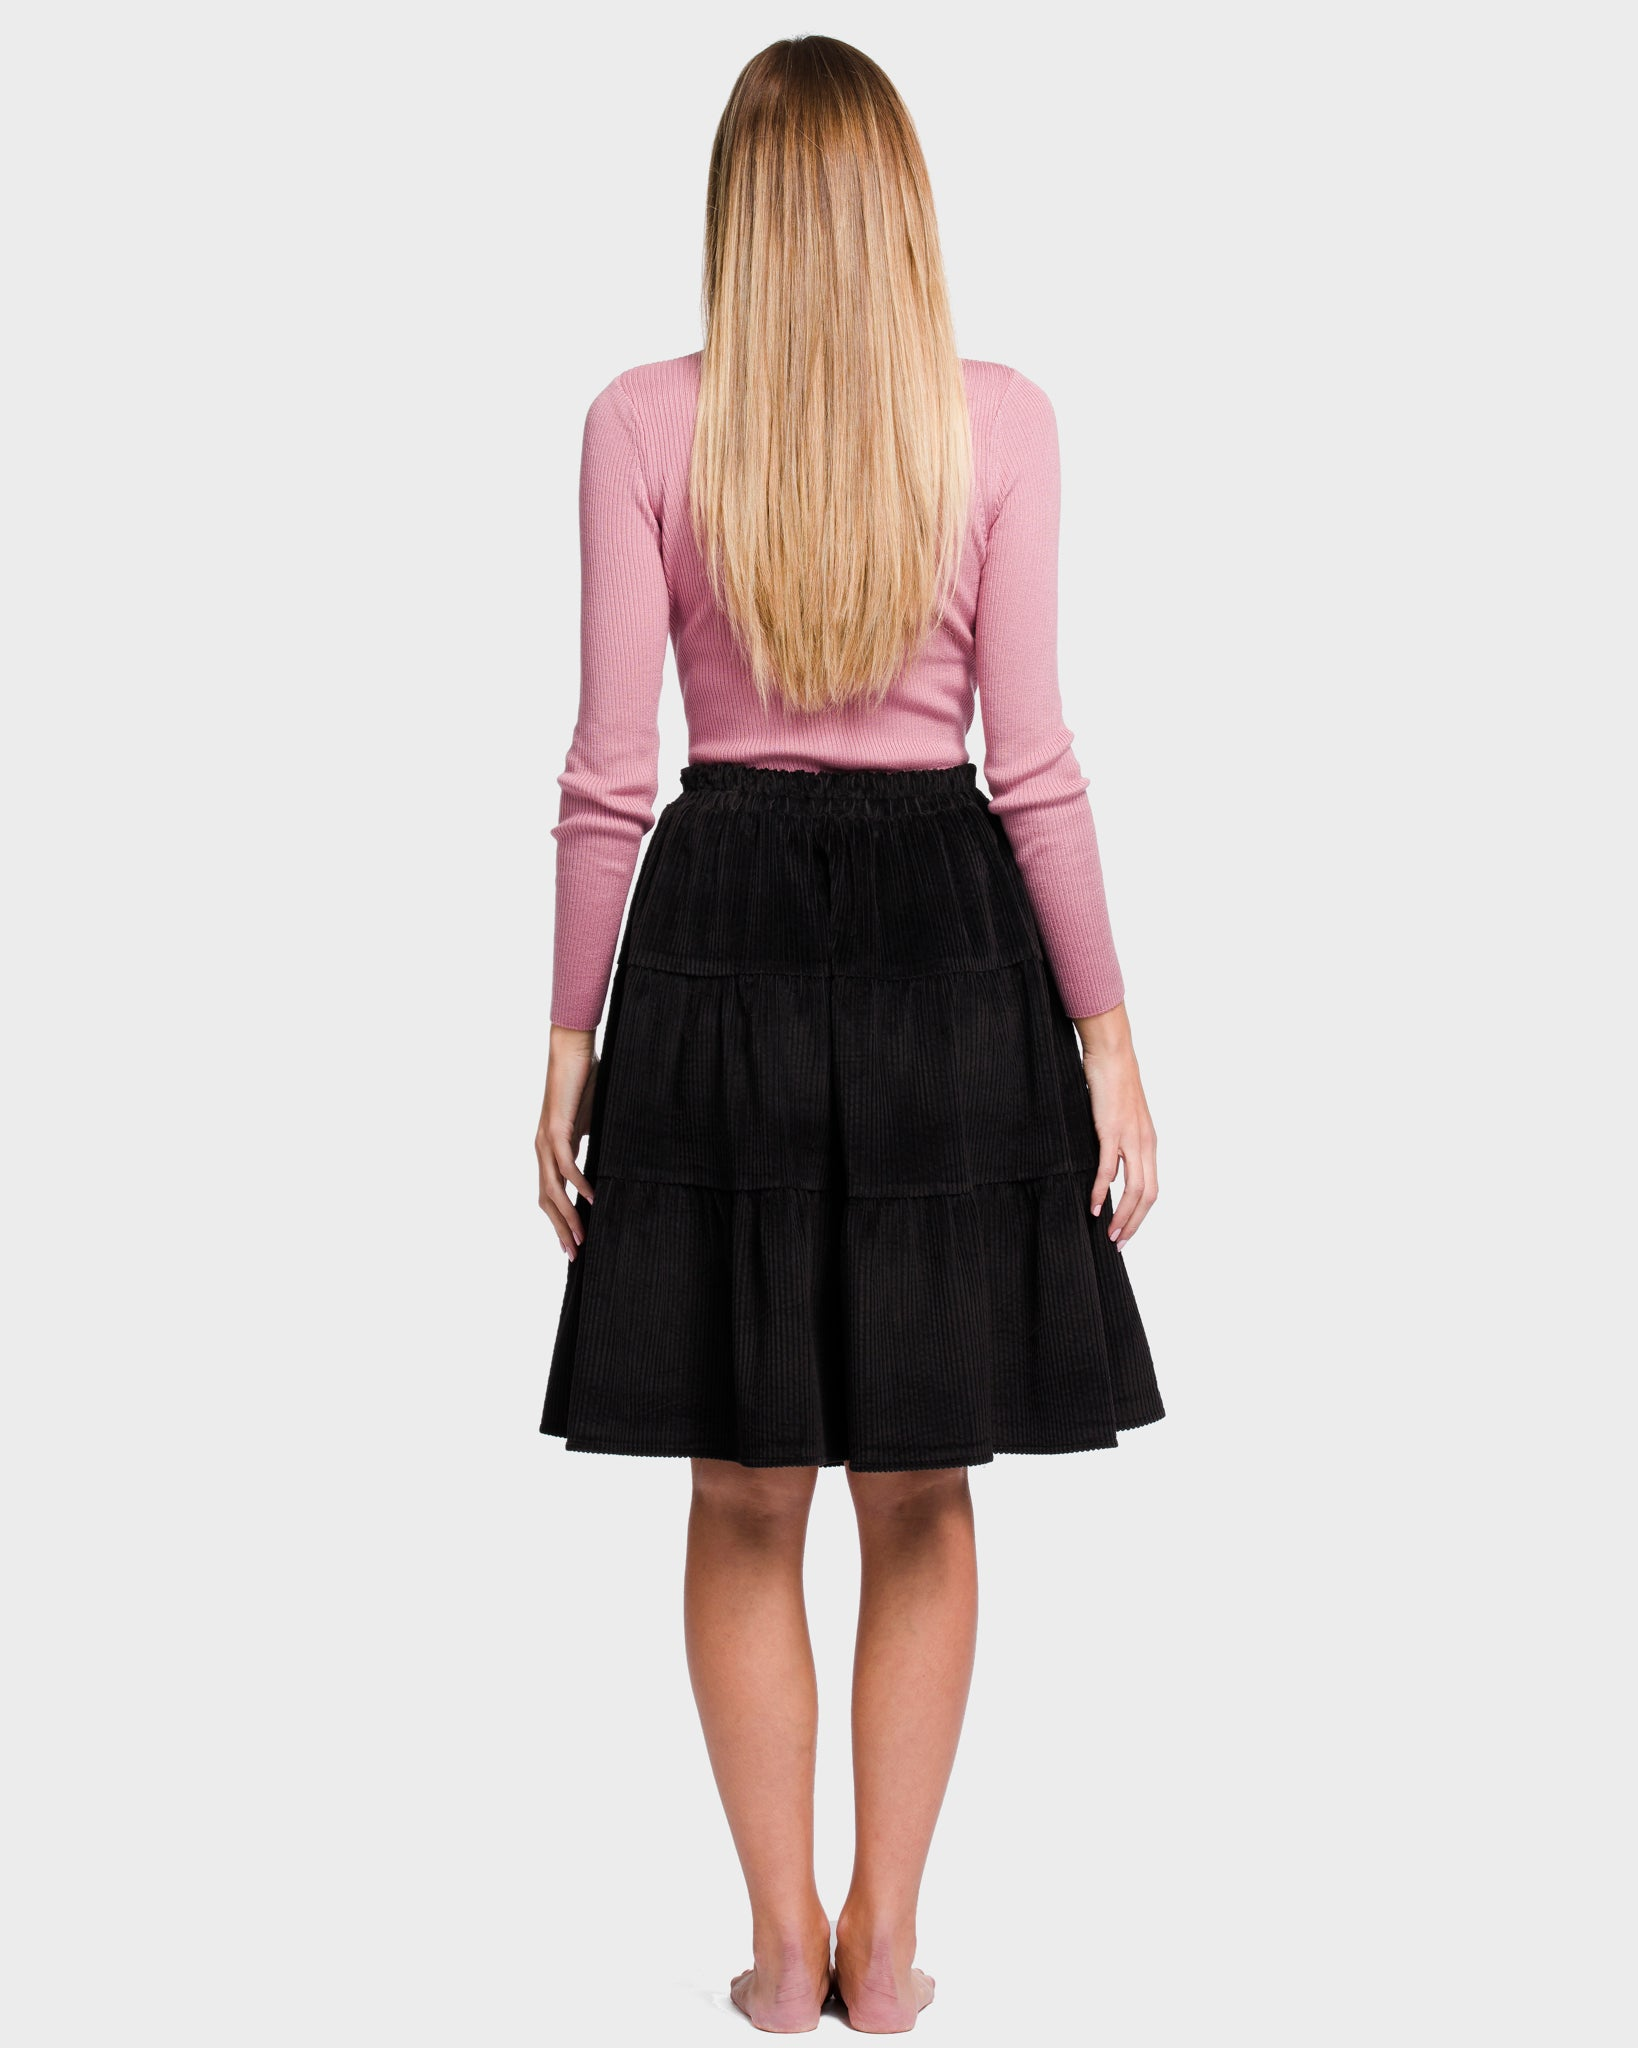 The Corduroy Flirt Skirt Black